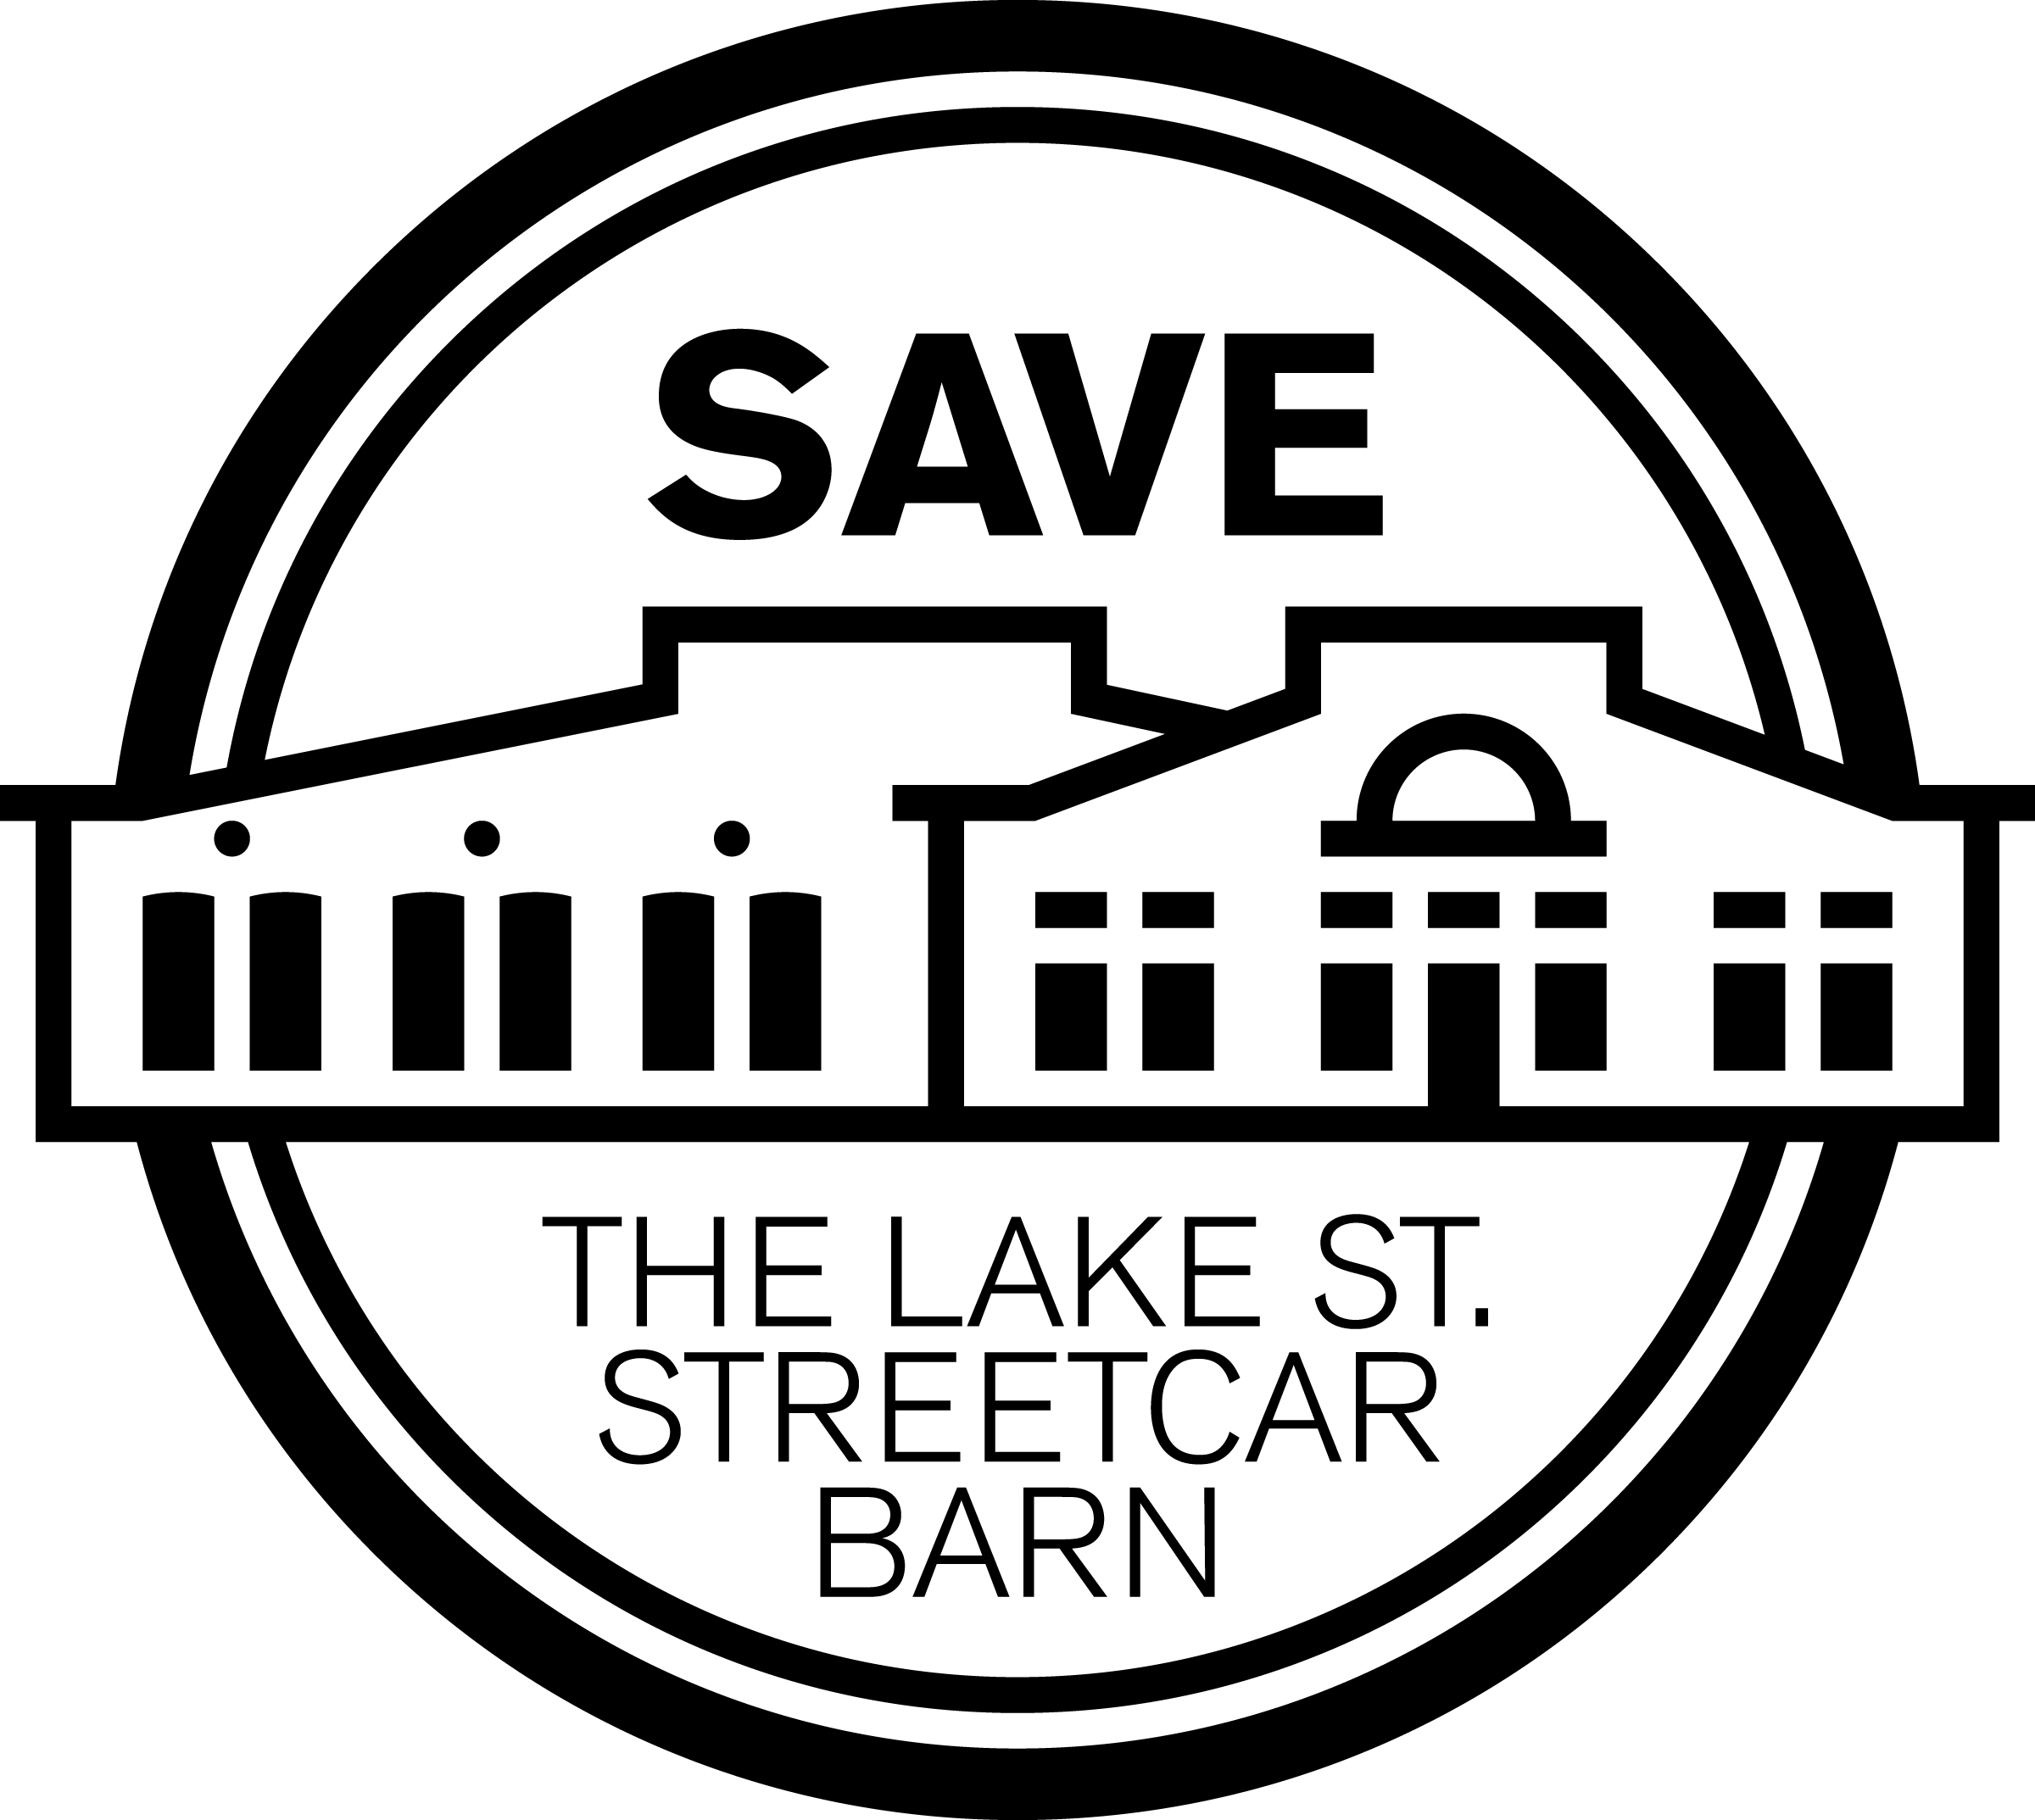 Save the Lake Street Streetcar Barn in North Omaha at 26th and Lake